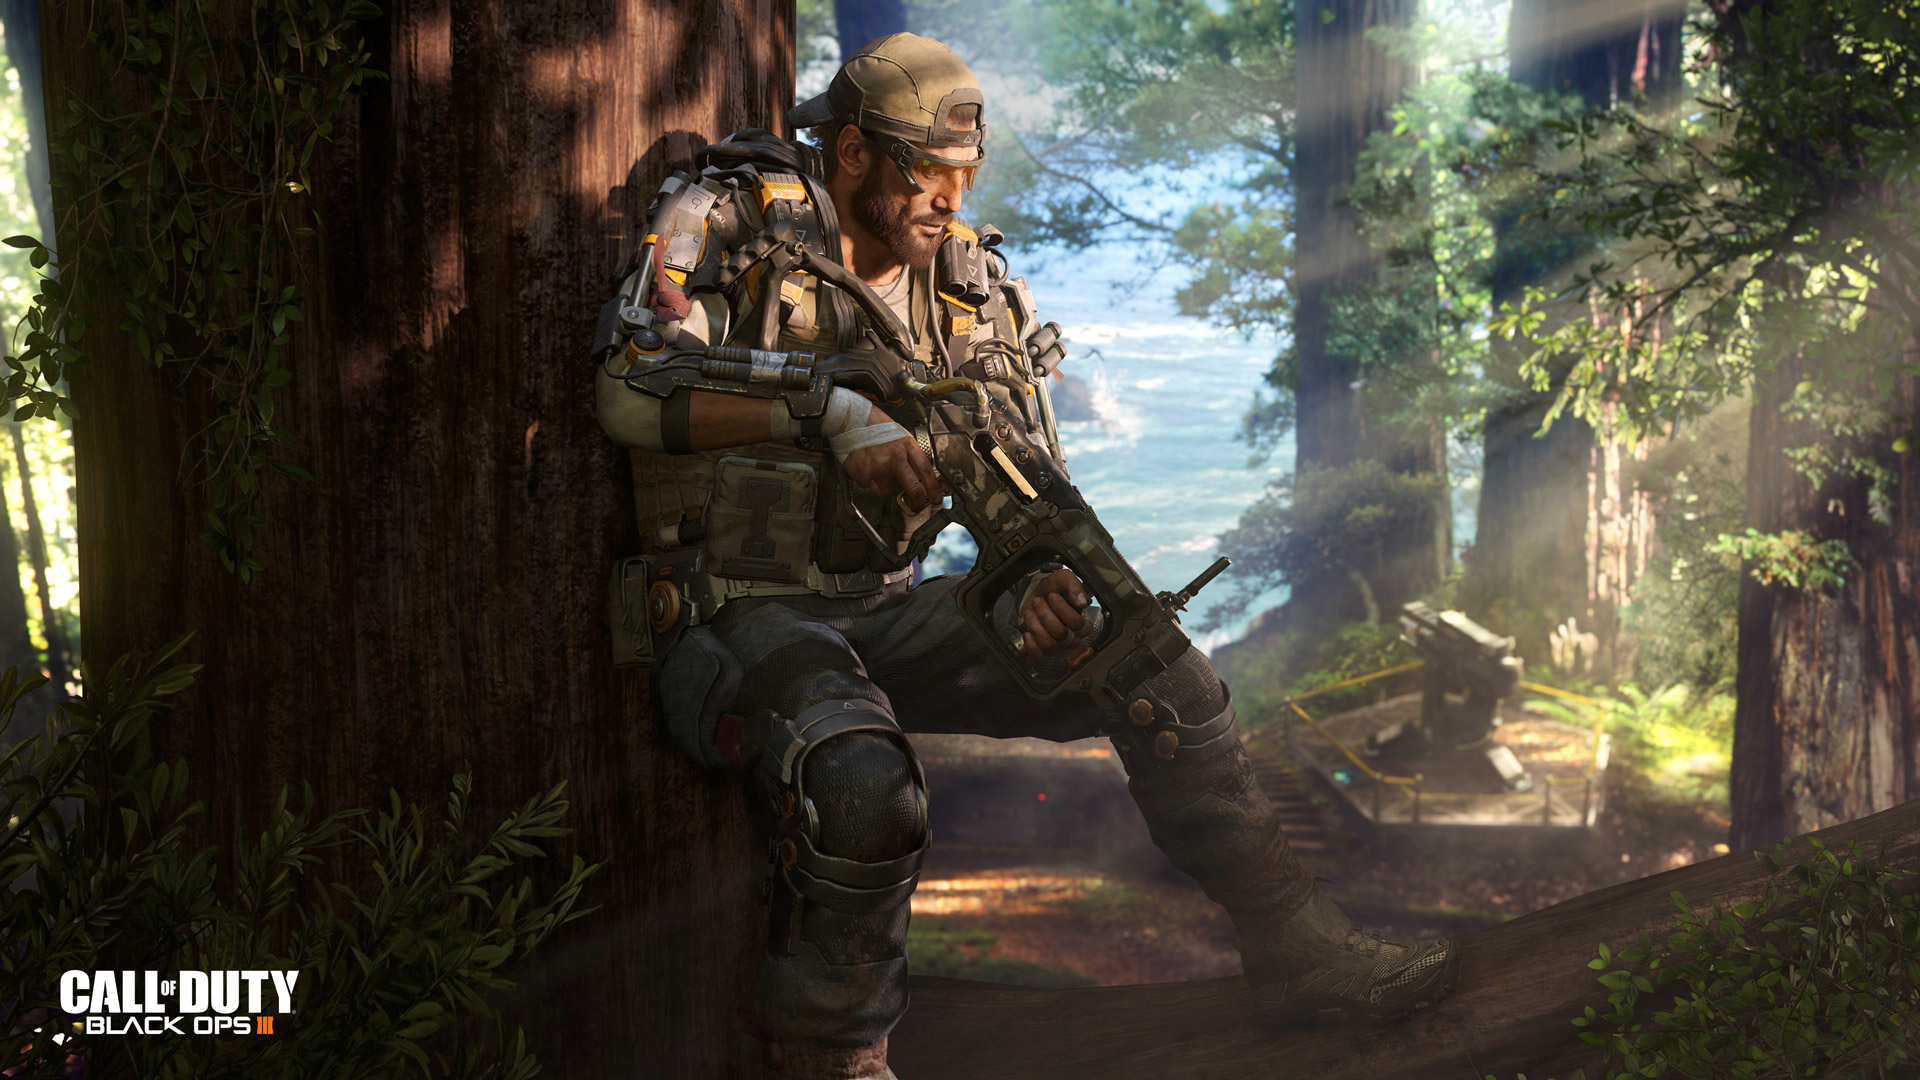 Call of Duty Black Ops 3 wallpaper 11